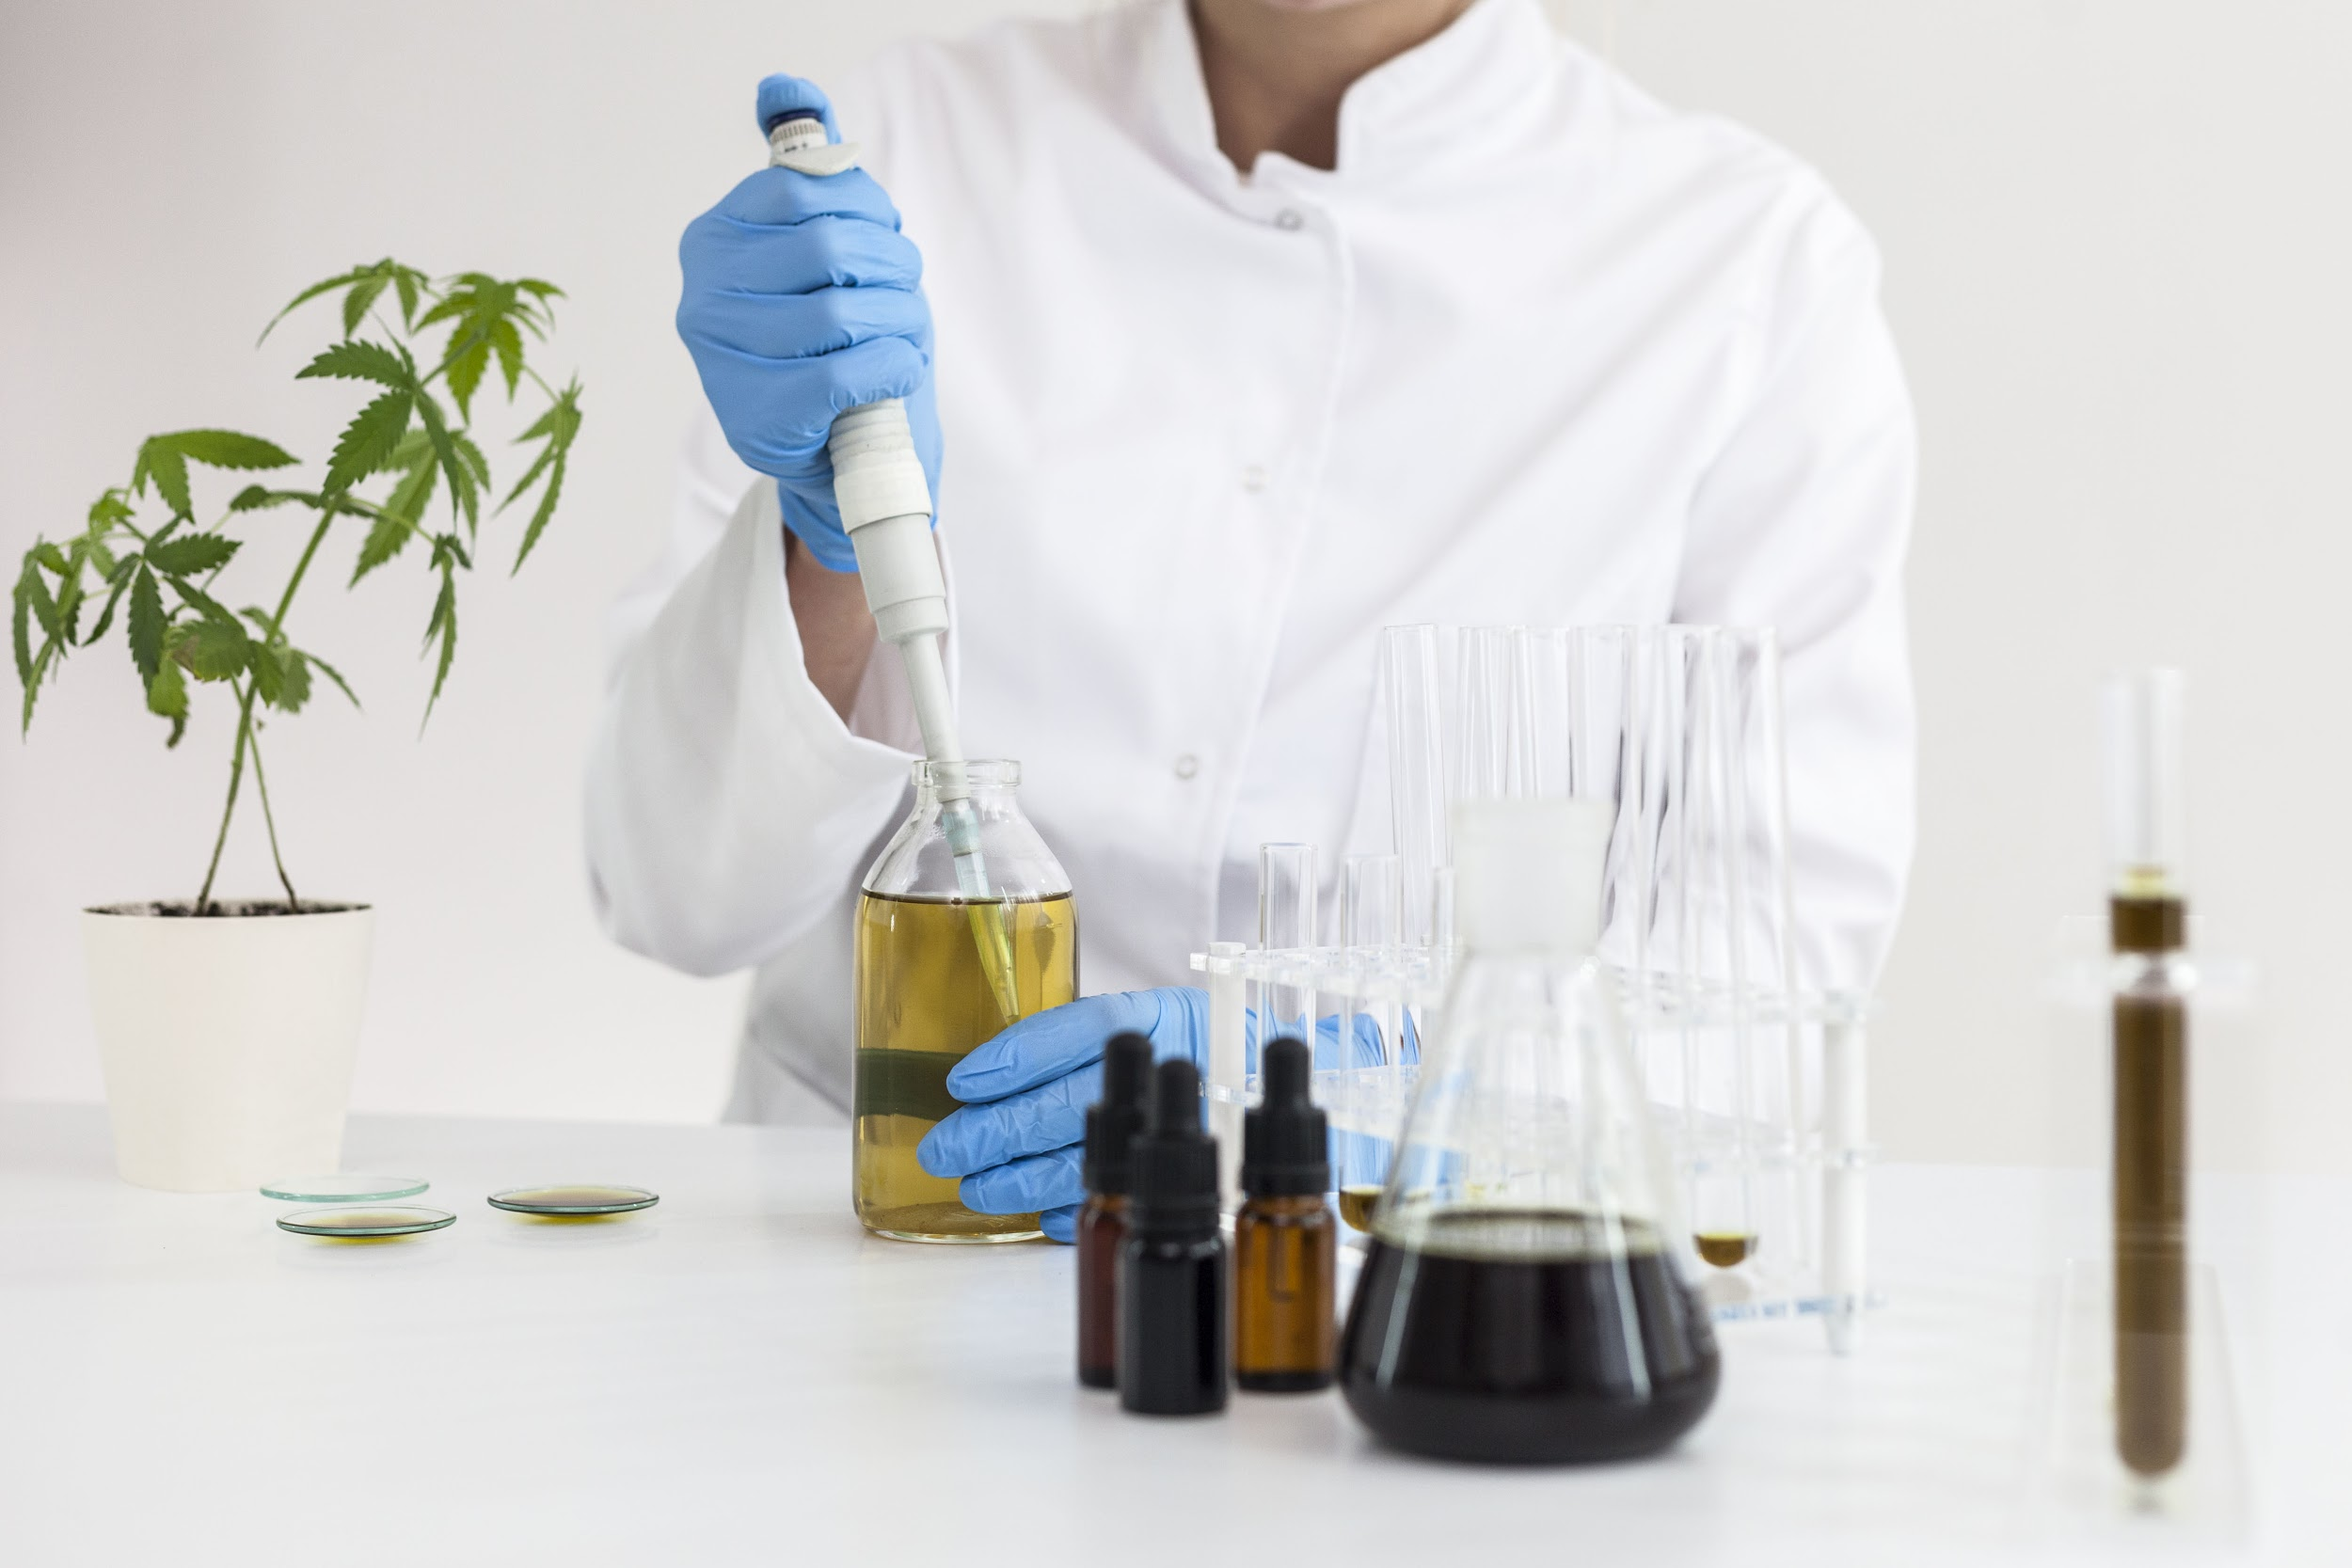 What You Should Know Before Starting Your Own CBD Company